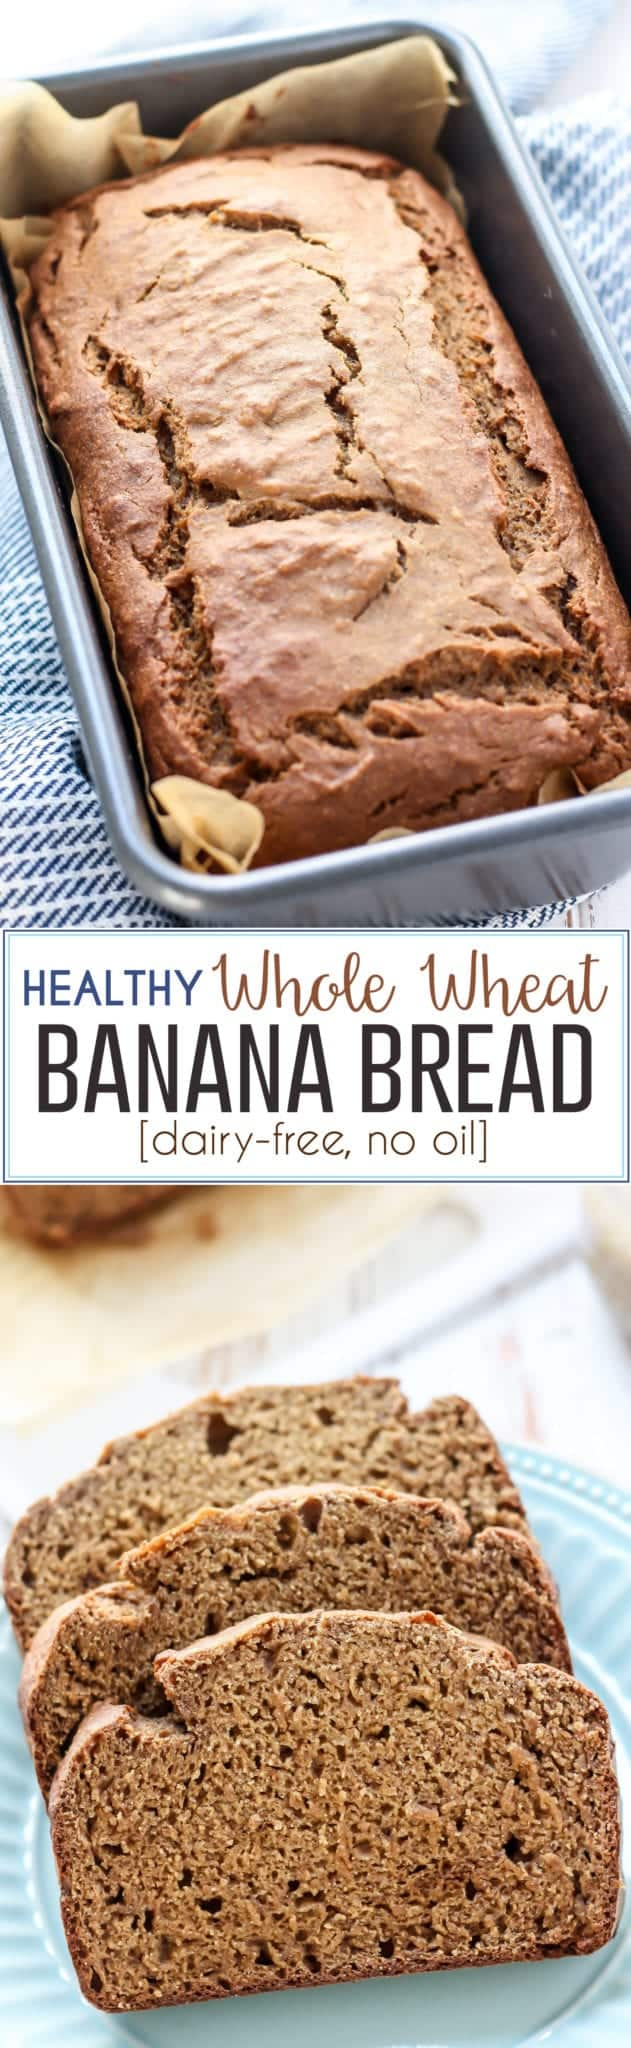 Healthy Whole Wheat Banana Bread